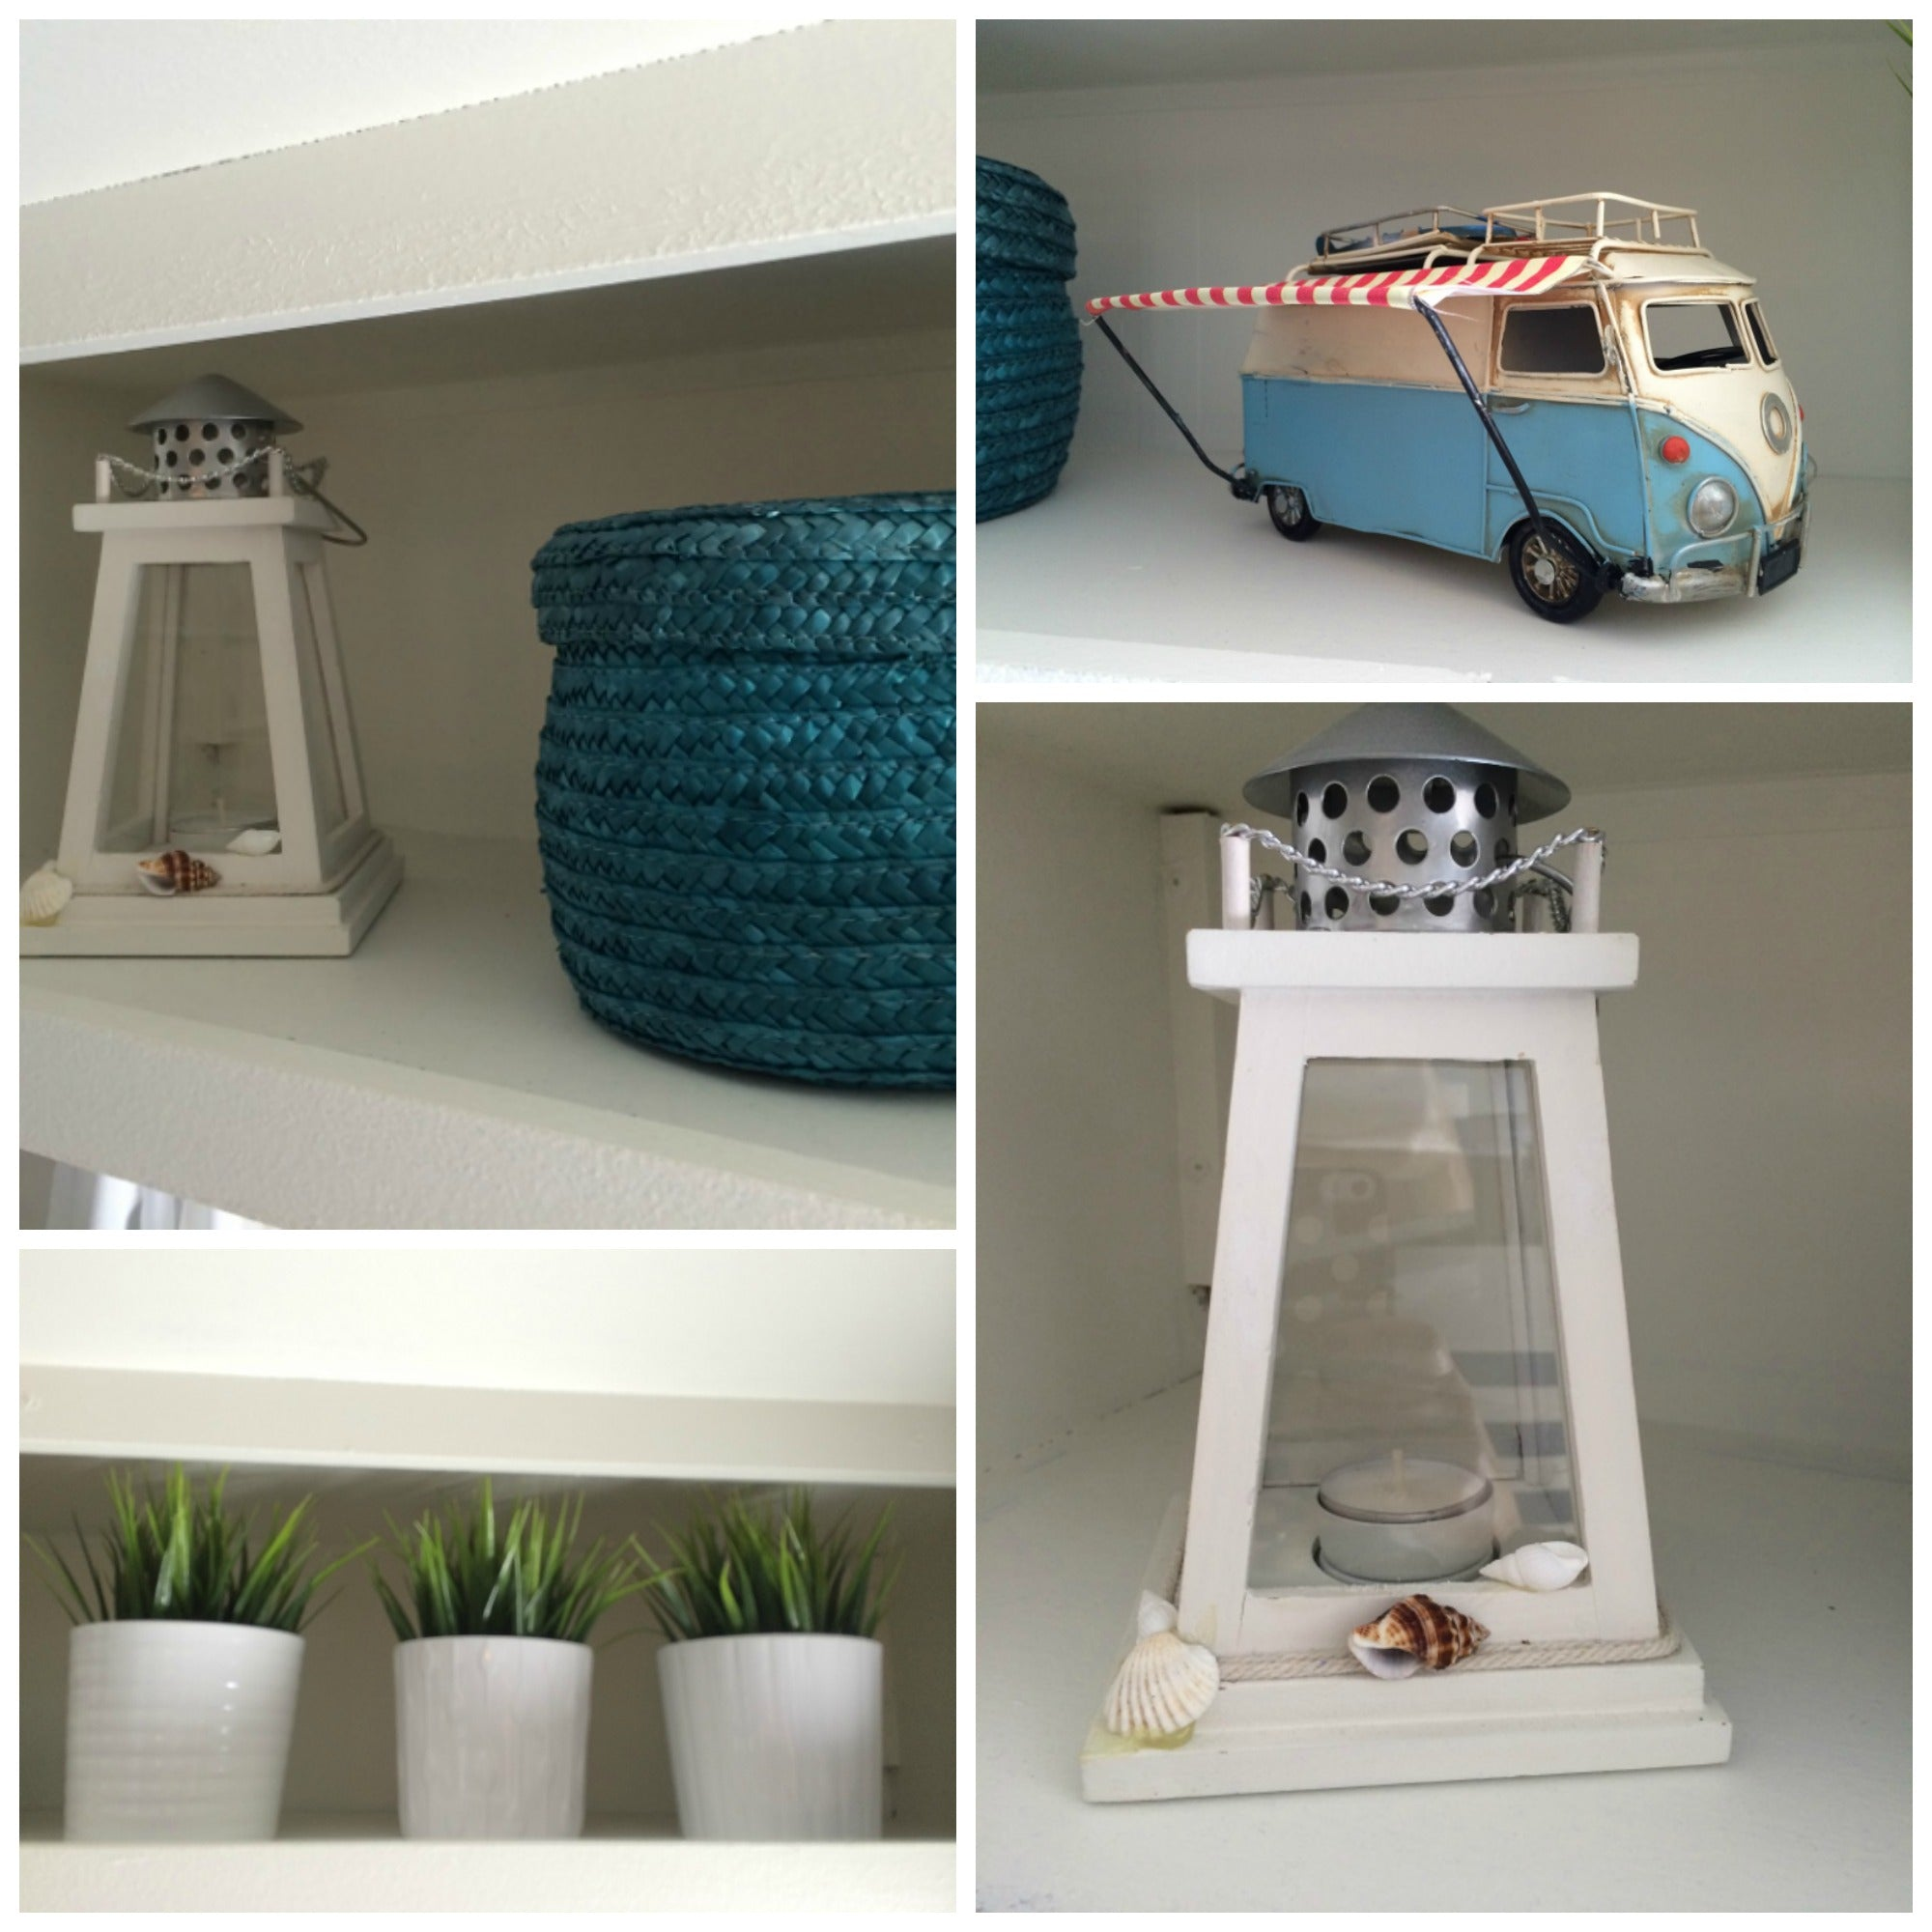 Camper Shelf Details